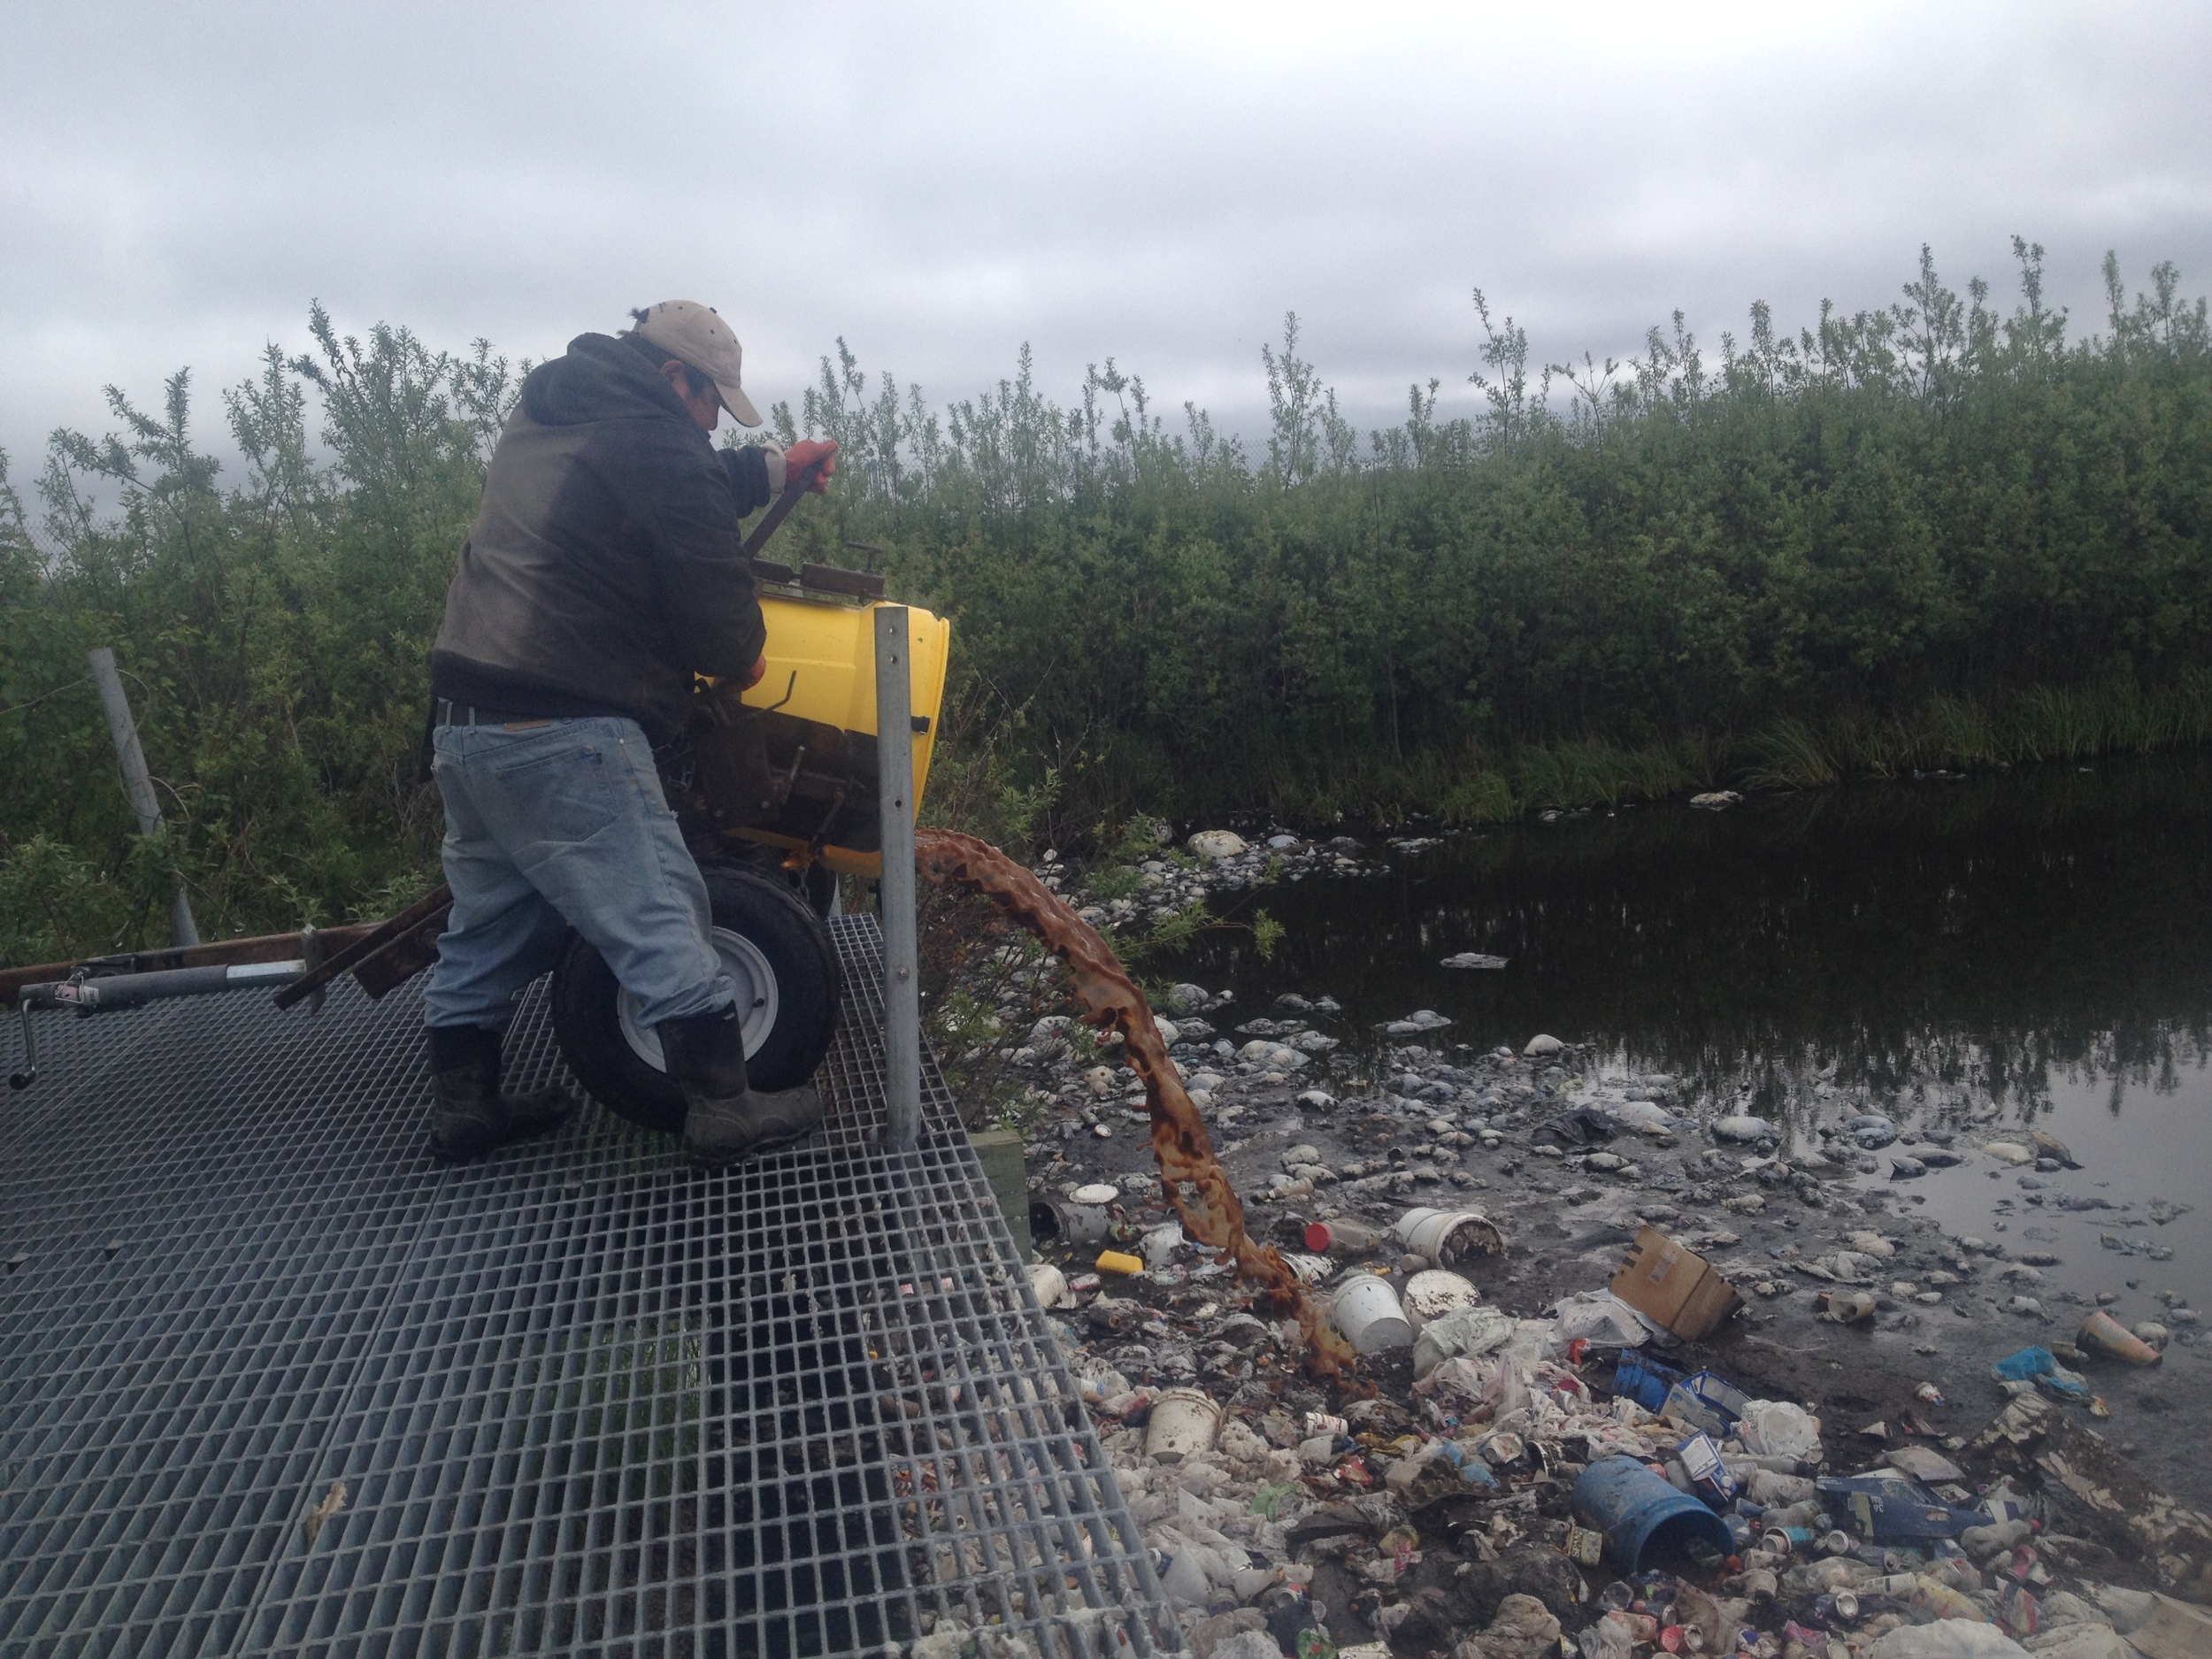 A sanitation hauler dumps human waste  from a honeybucket collection bin into a sewage lagoon.